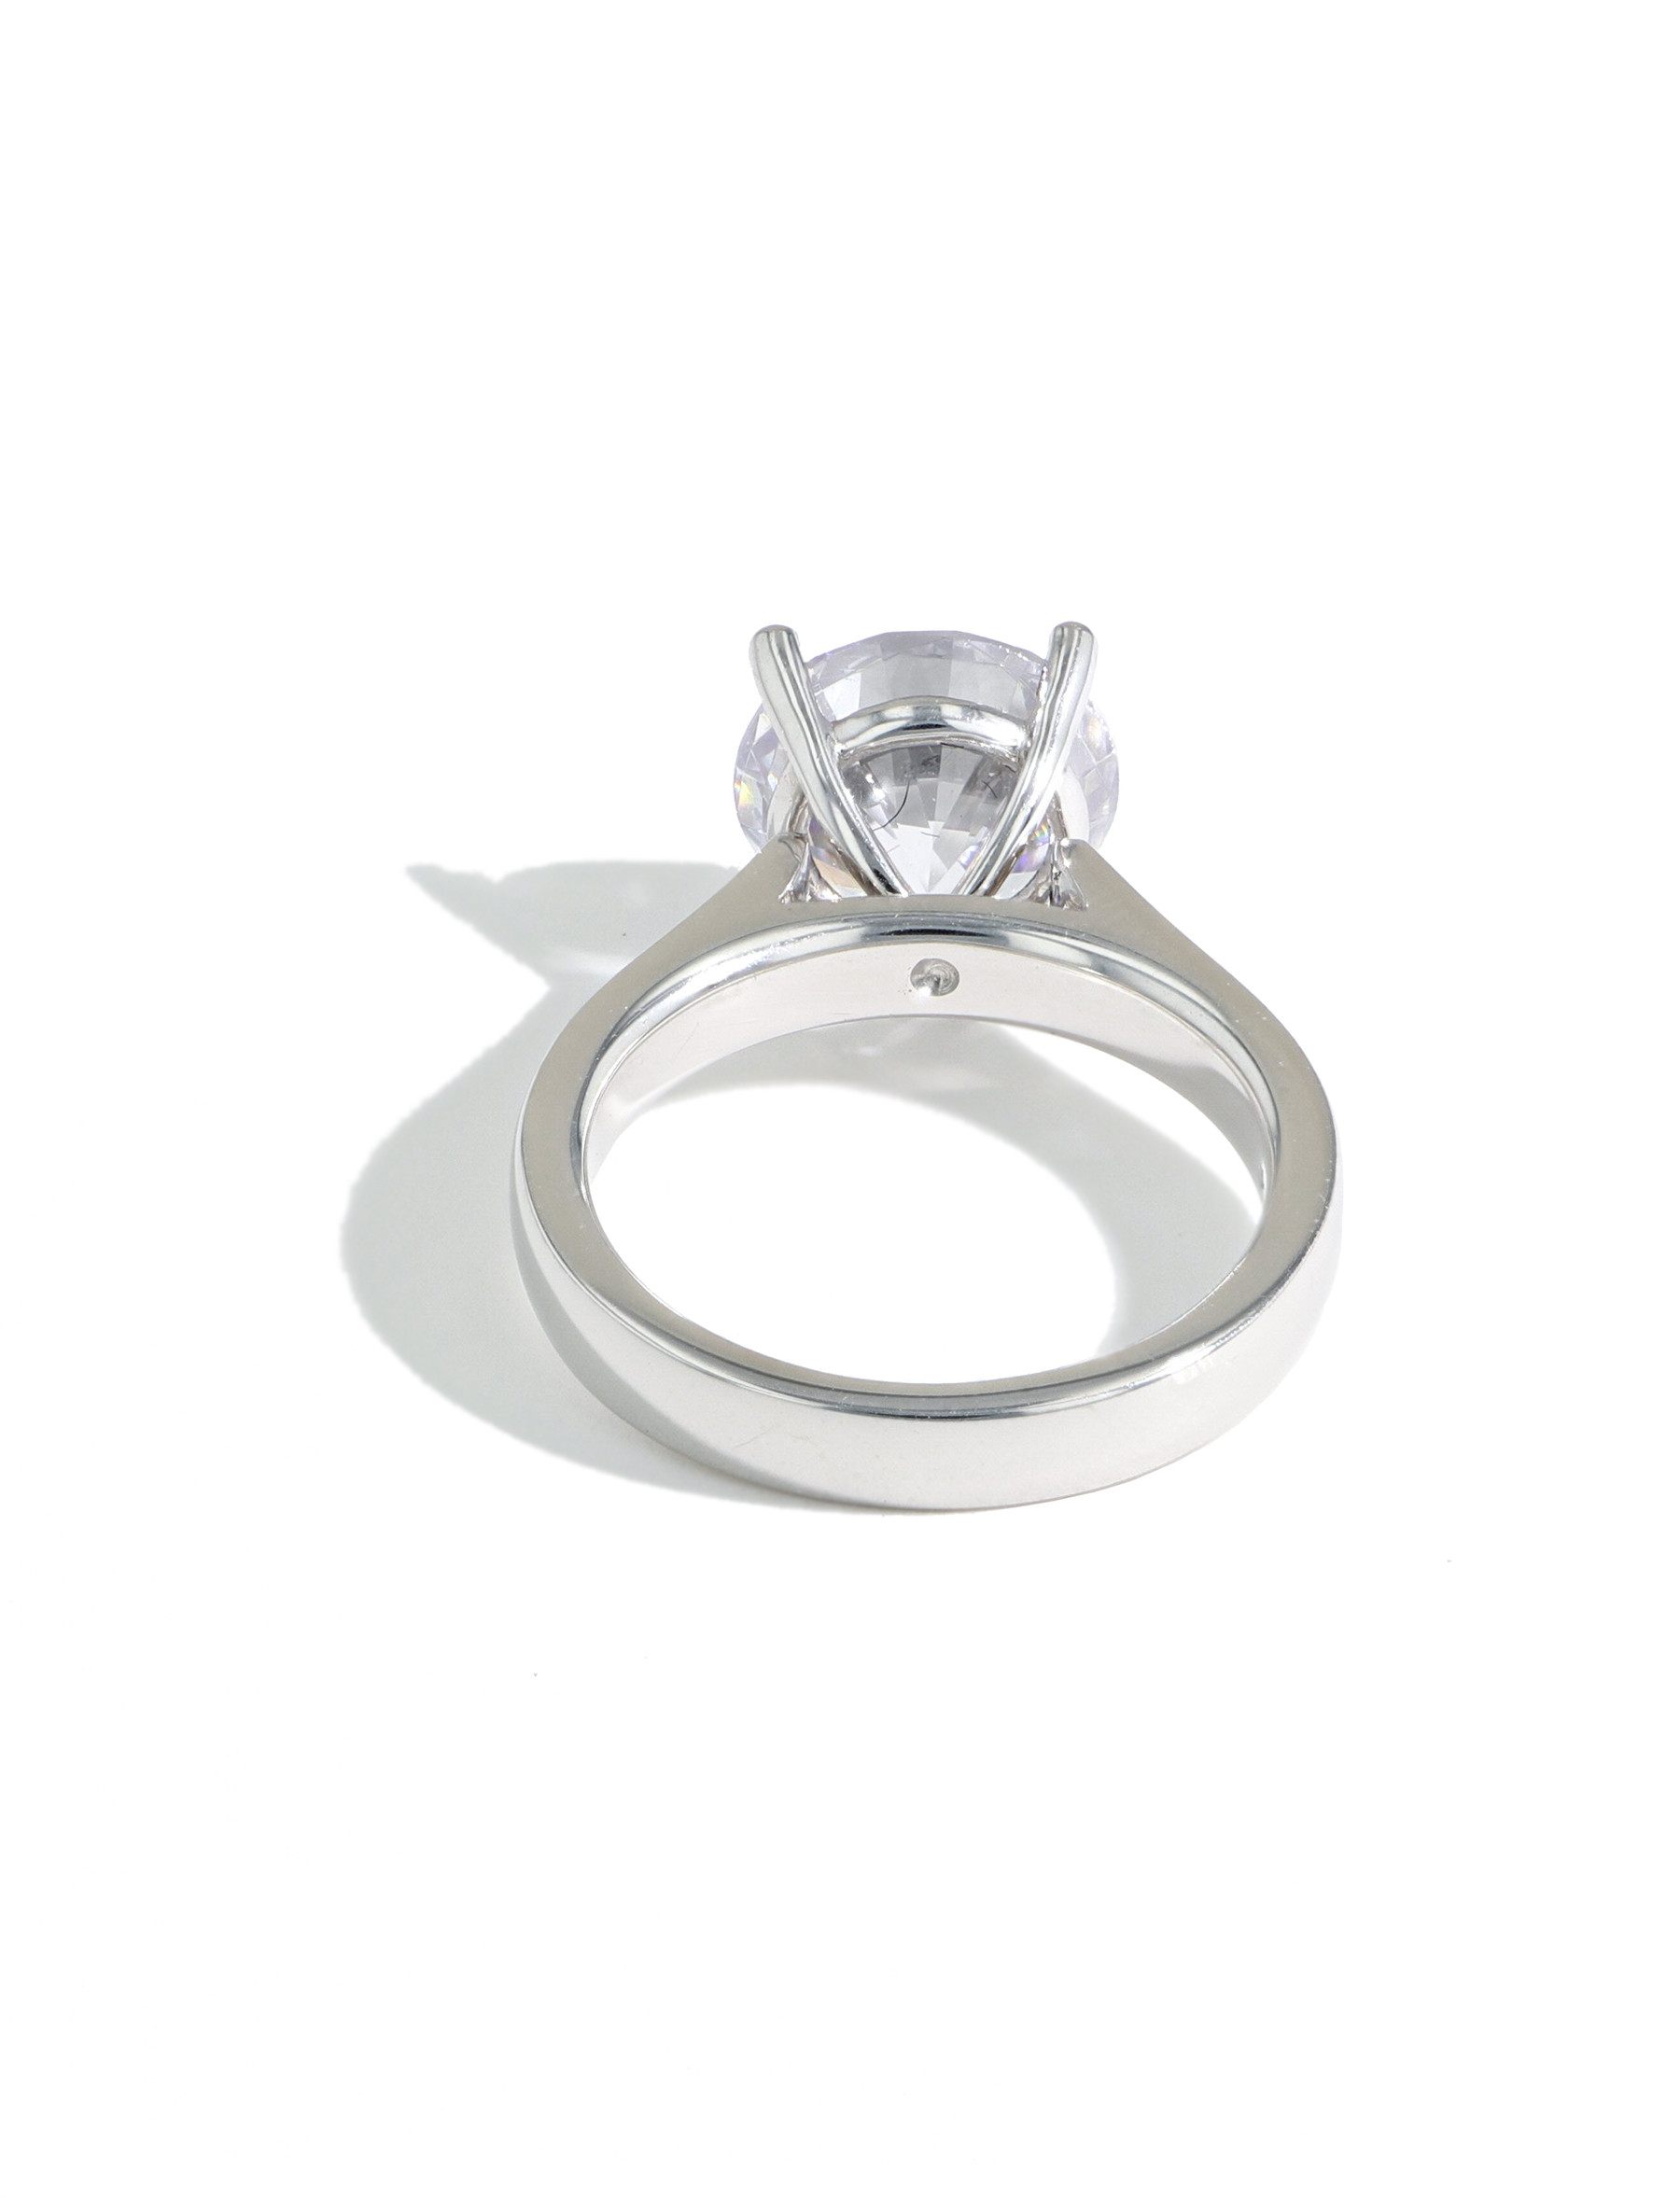 The Round Solitaire Engagement Ring Setting in Platinum back view